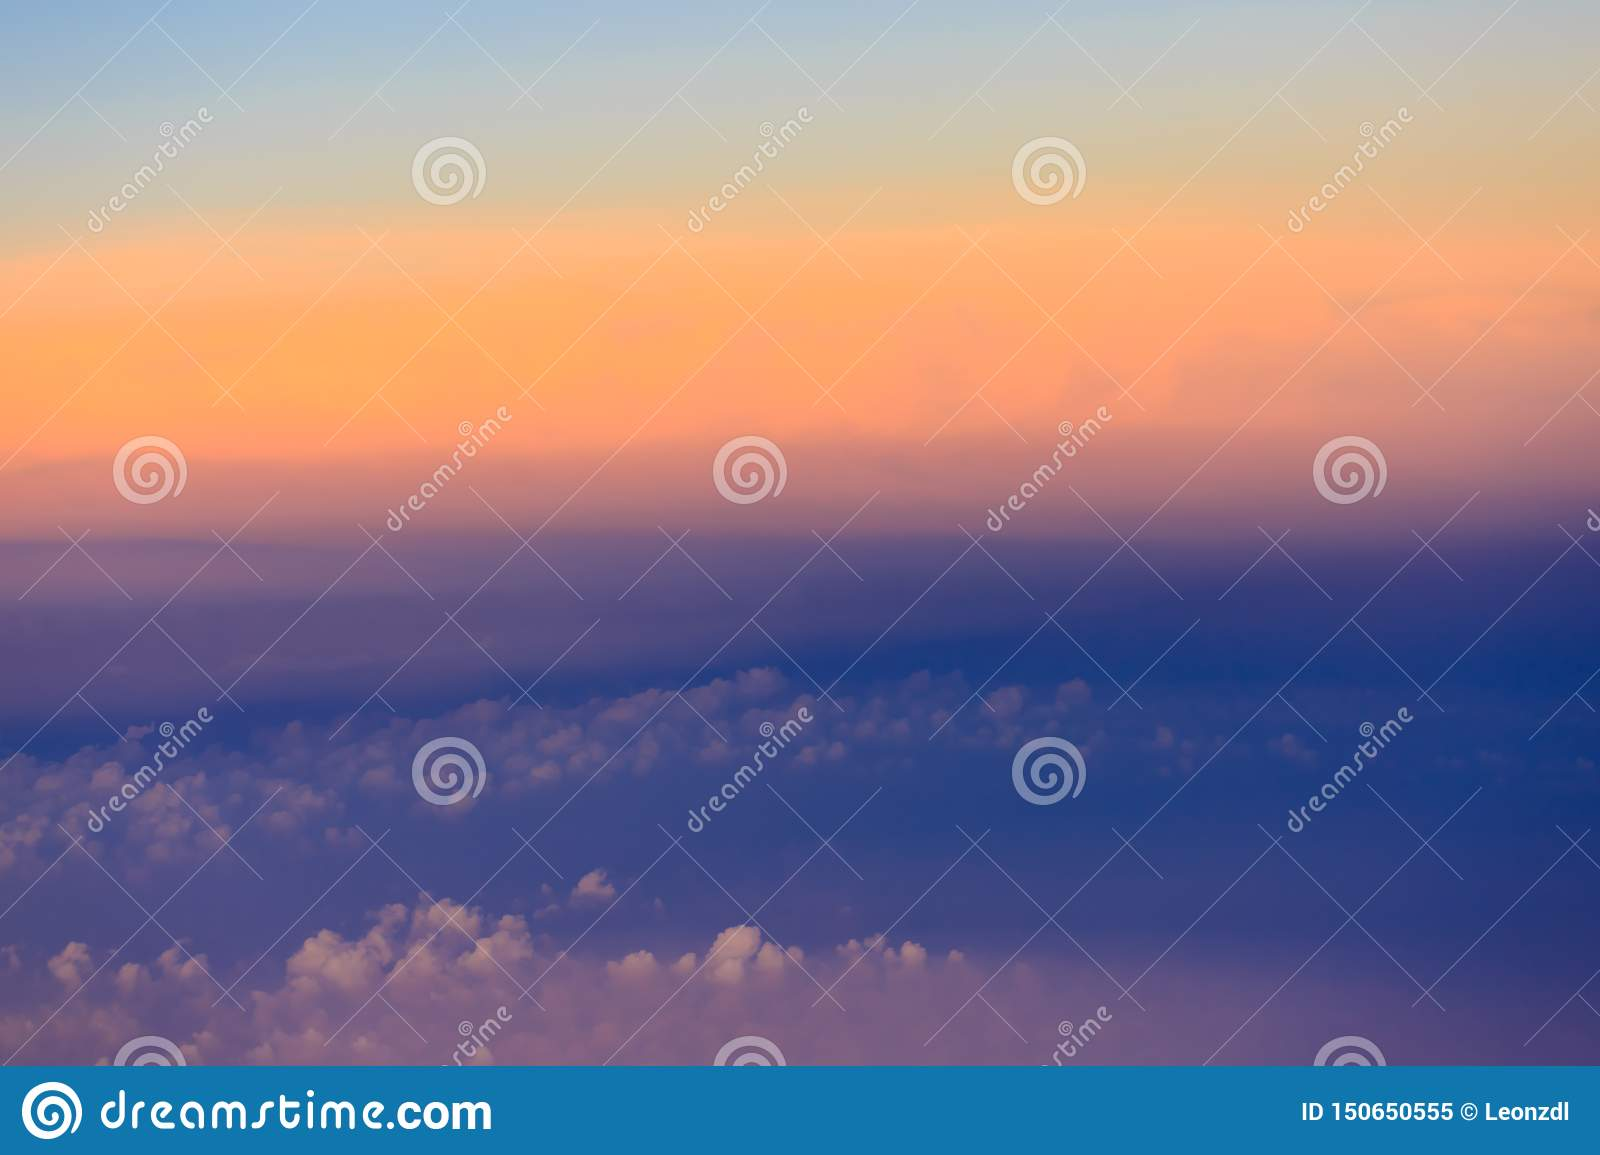 Beautiful sunset sky above clouds with dramatic light